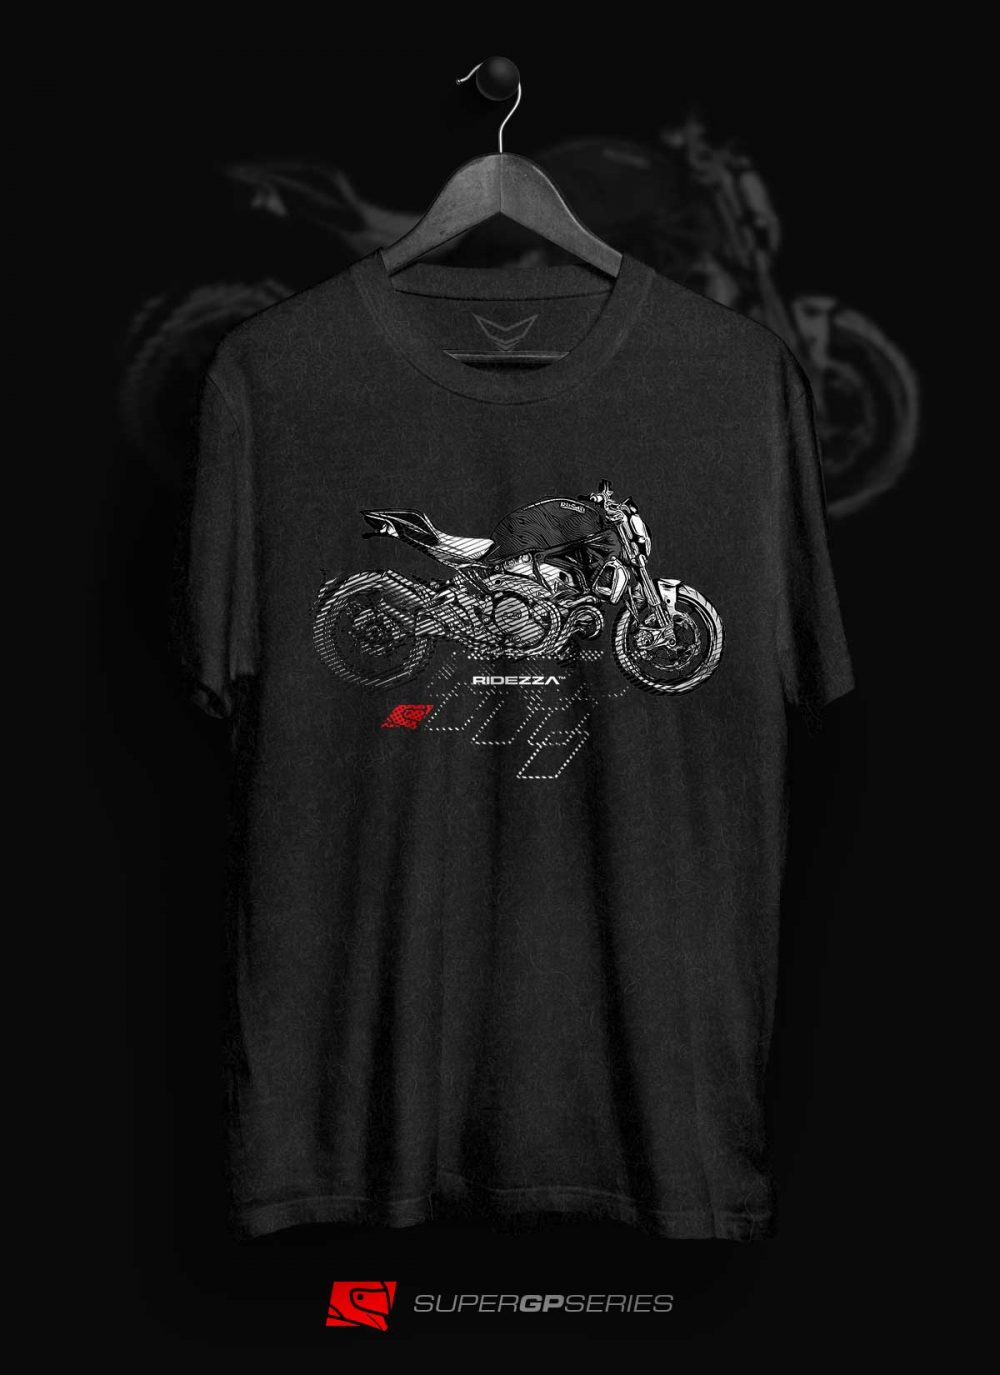 Ridezza Monster SuperGP Series T-Shirt